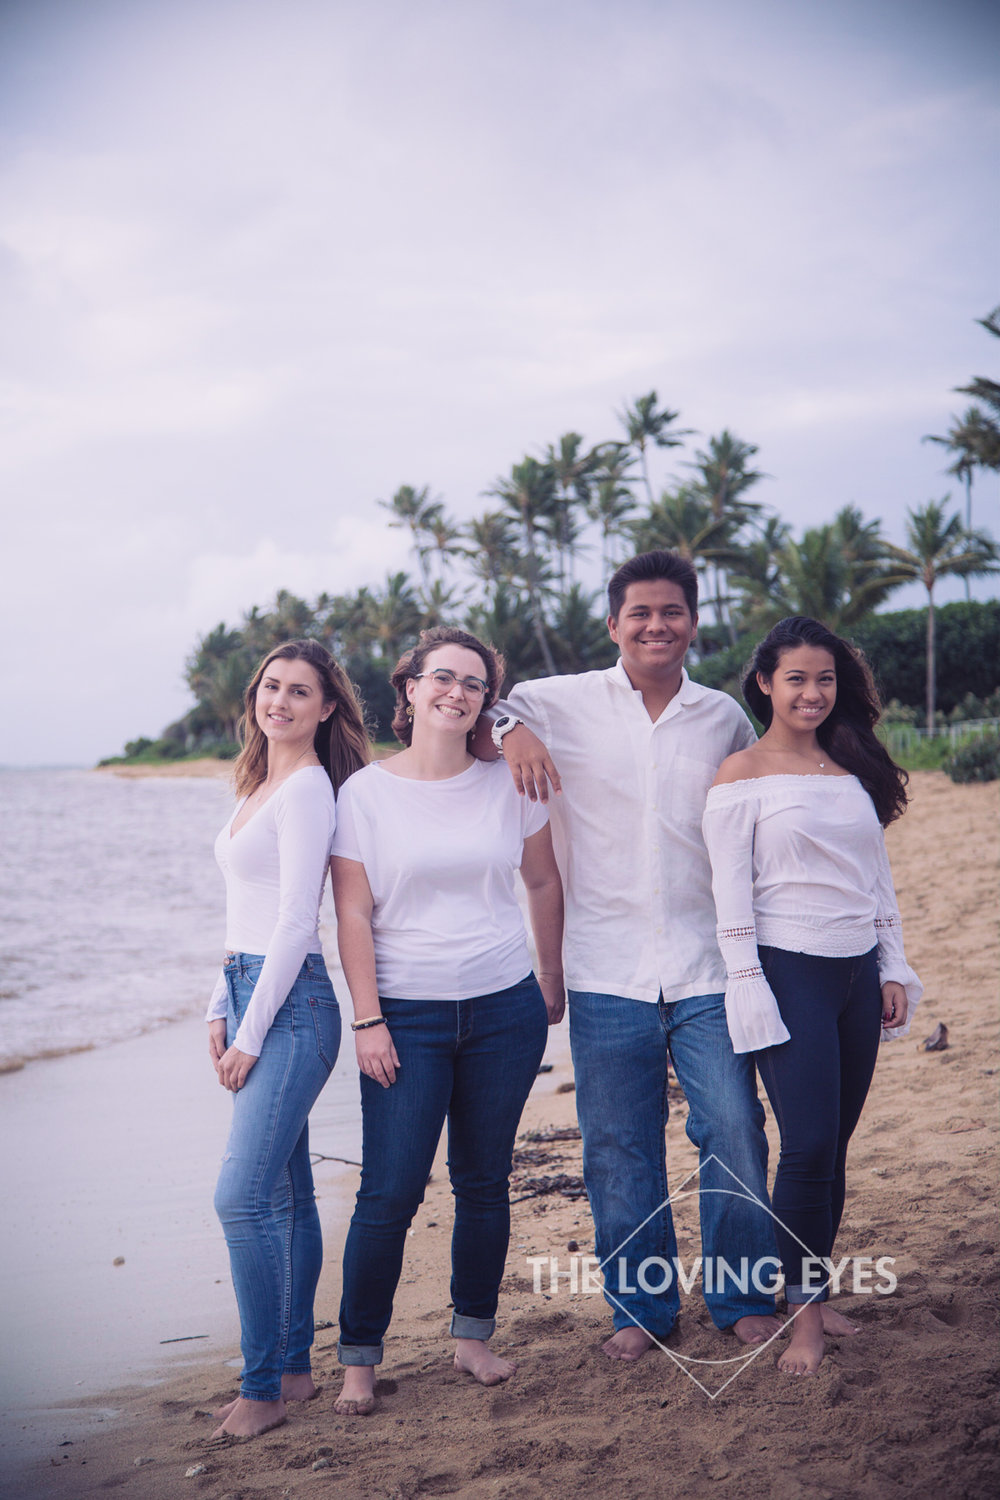 Family portrait on the beach in Hawaii